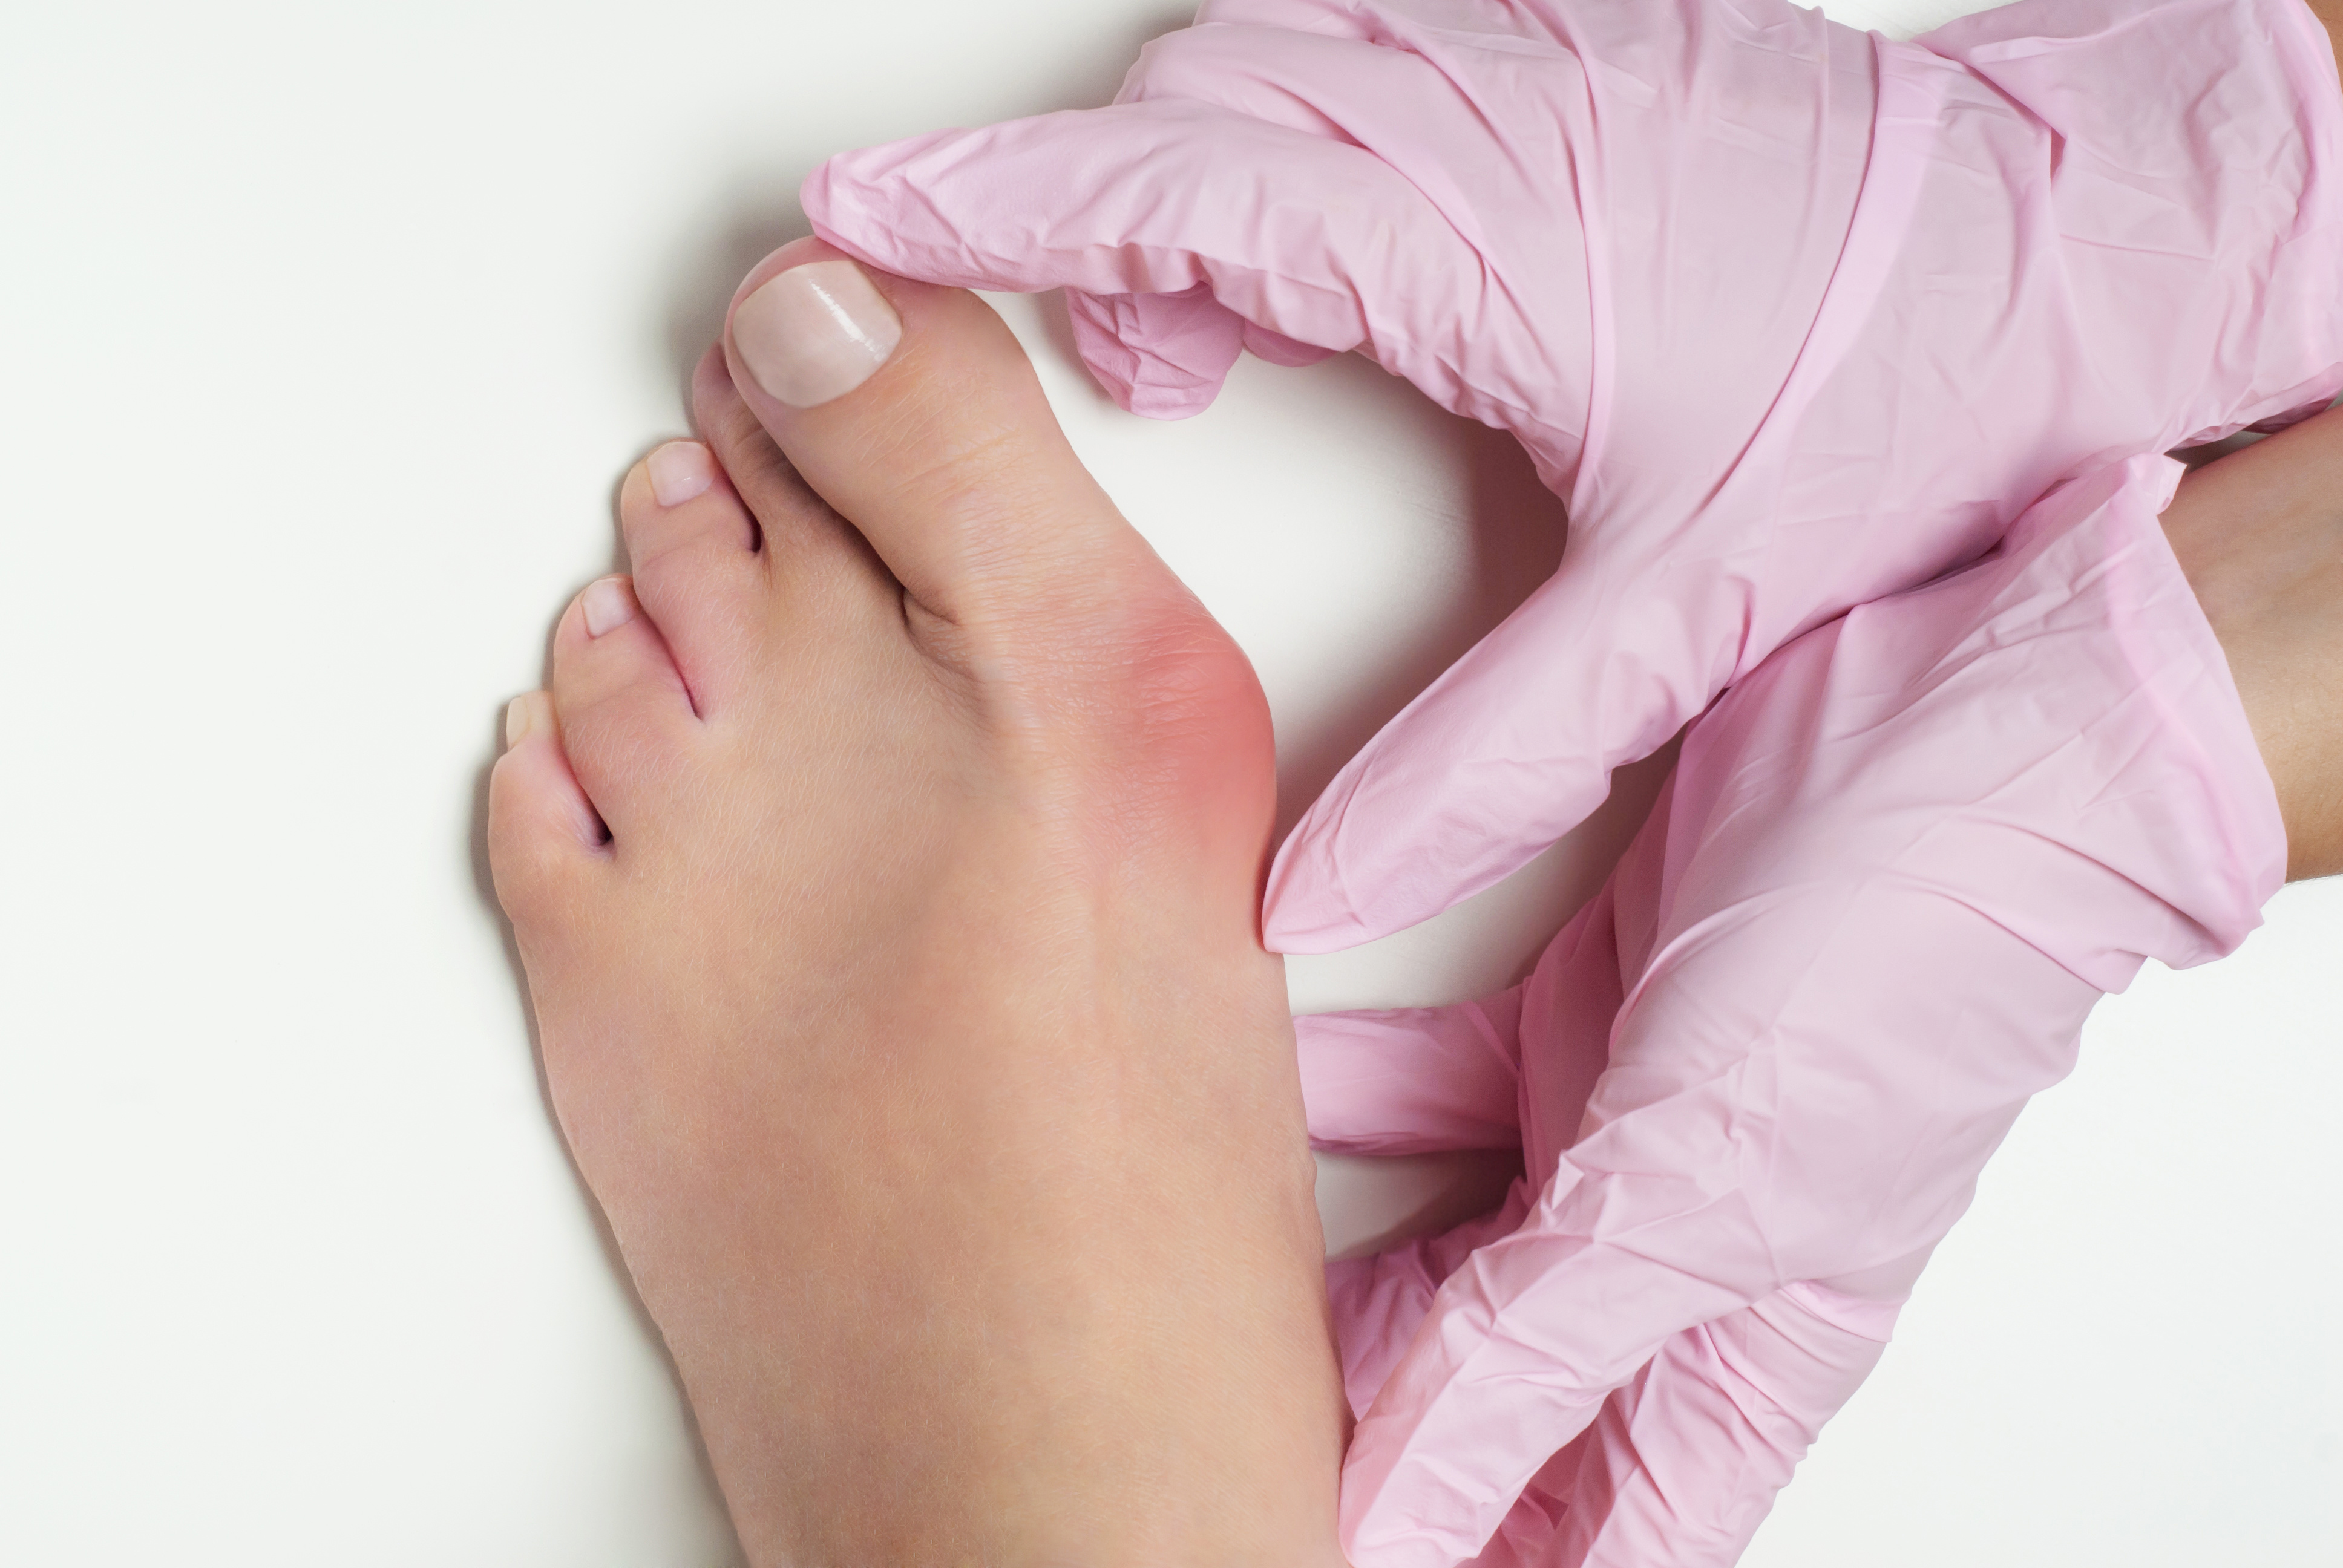 Hallux valgus, bunion in foot on white background